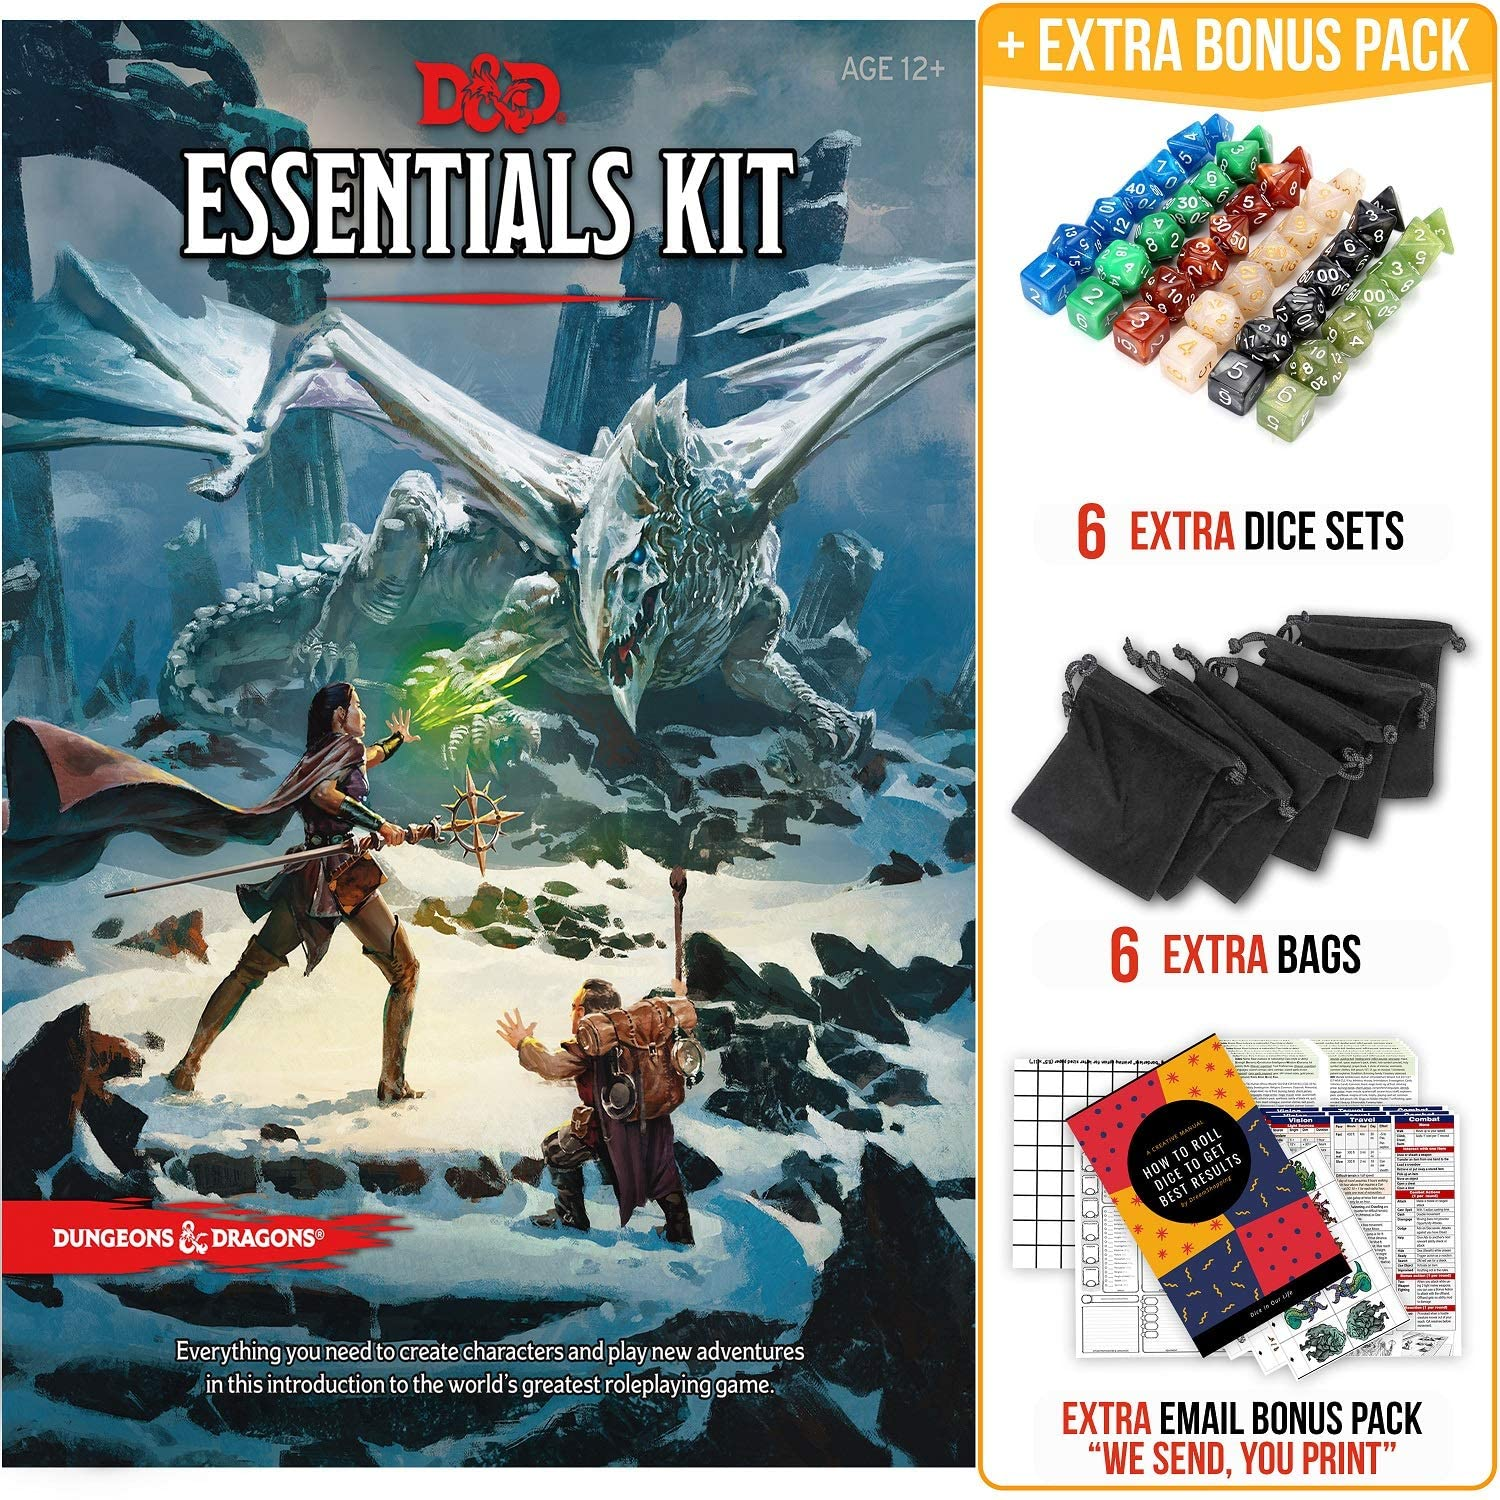 19. Dungeons and Dragons Essentials Kit 5th Edition